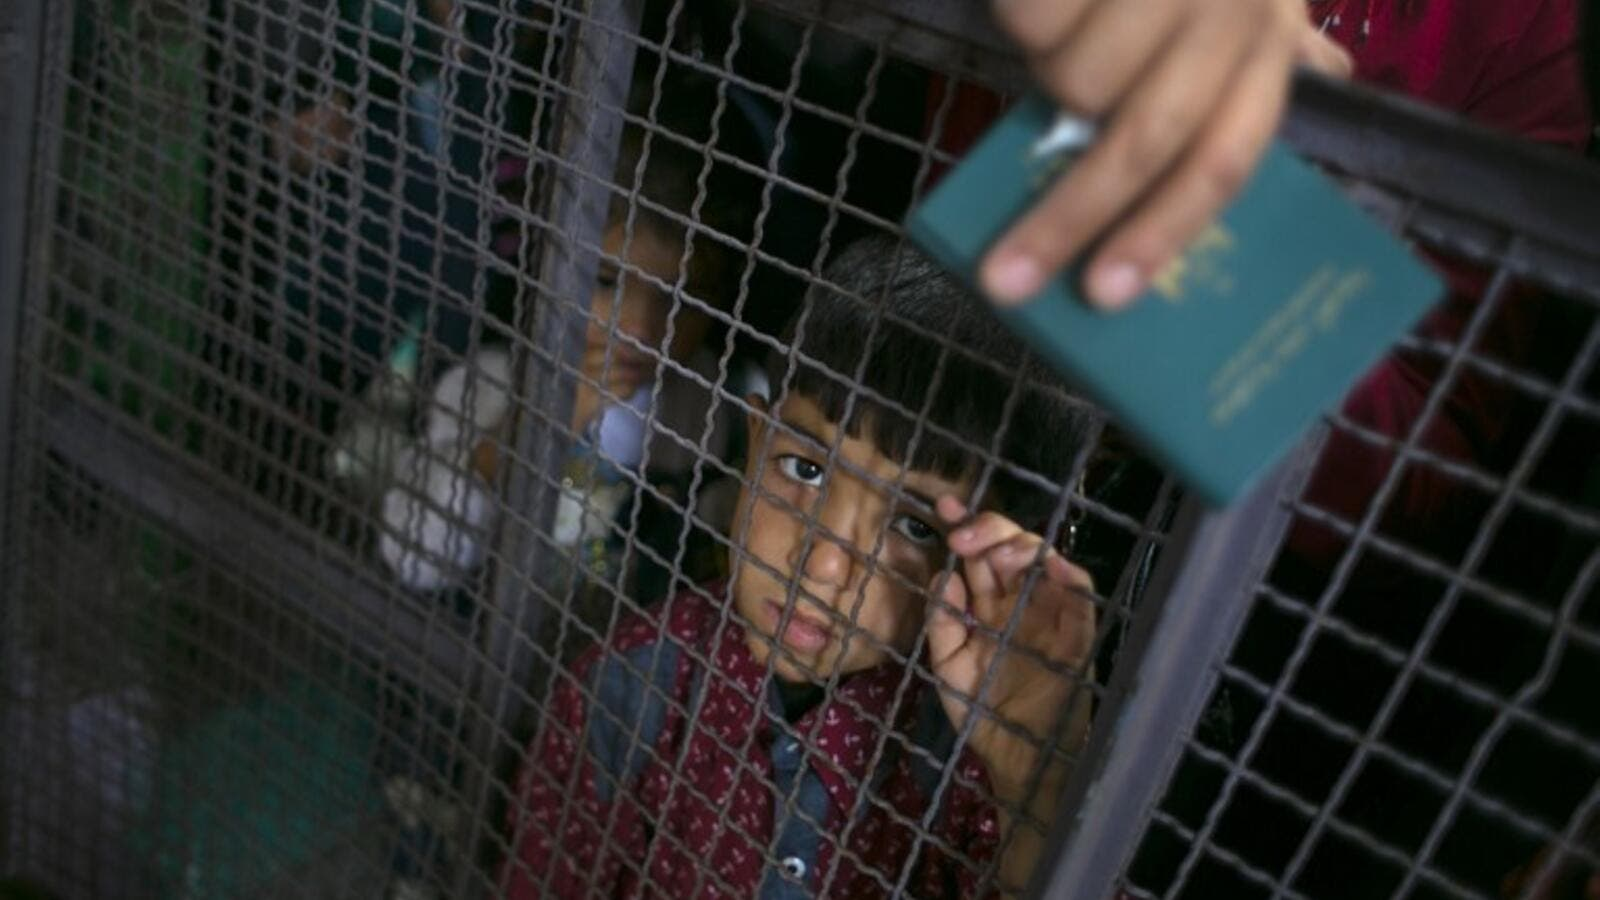 A Palestinian child looks through a barrier as he waits at the Rafah border crossing with Egypt, in the southern Gaza Strip, after it was opened for two days by Egyptian authorities, on May 11, 2016. (AFP/Said Khatib)